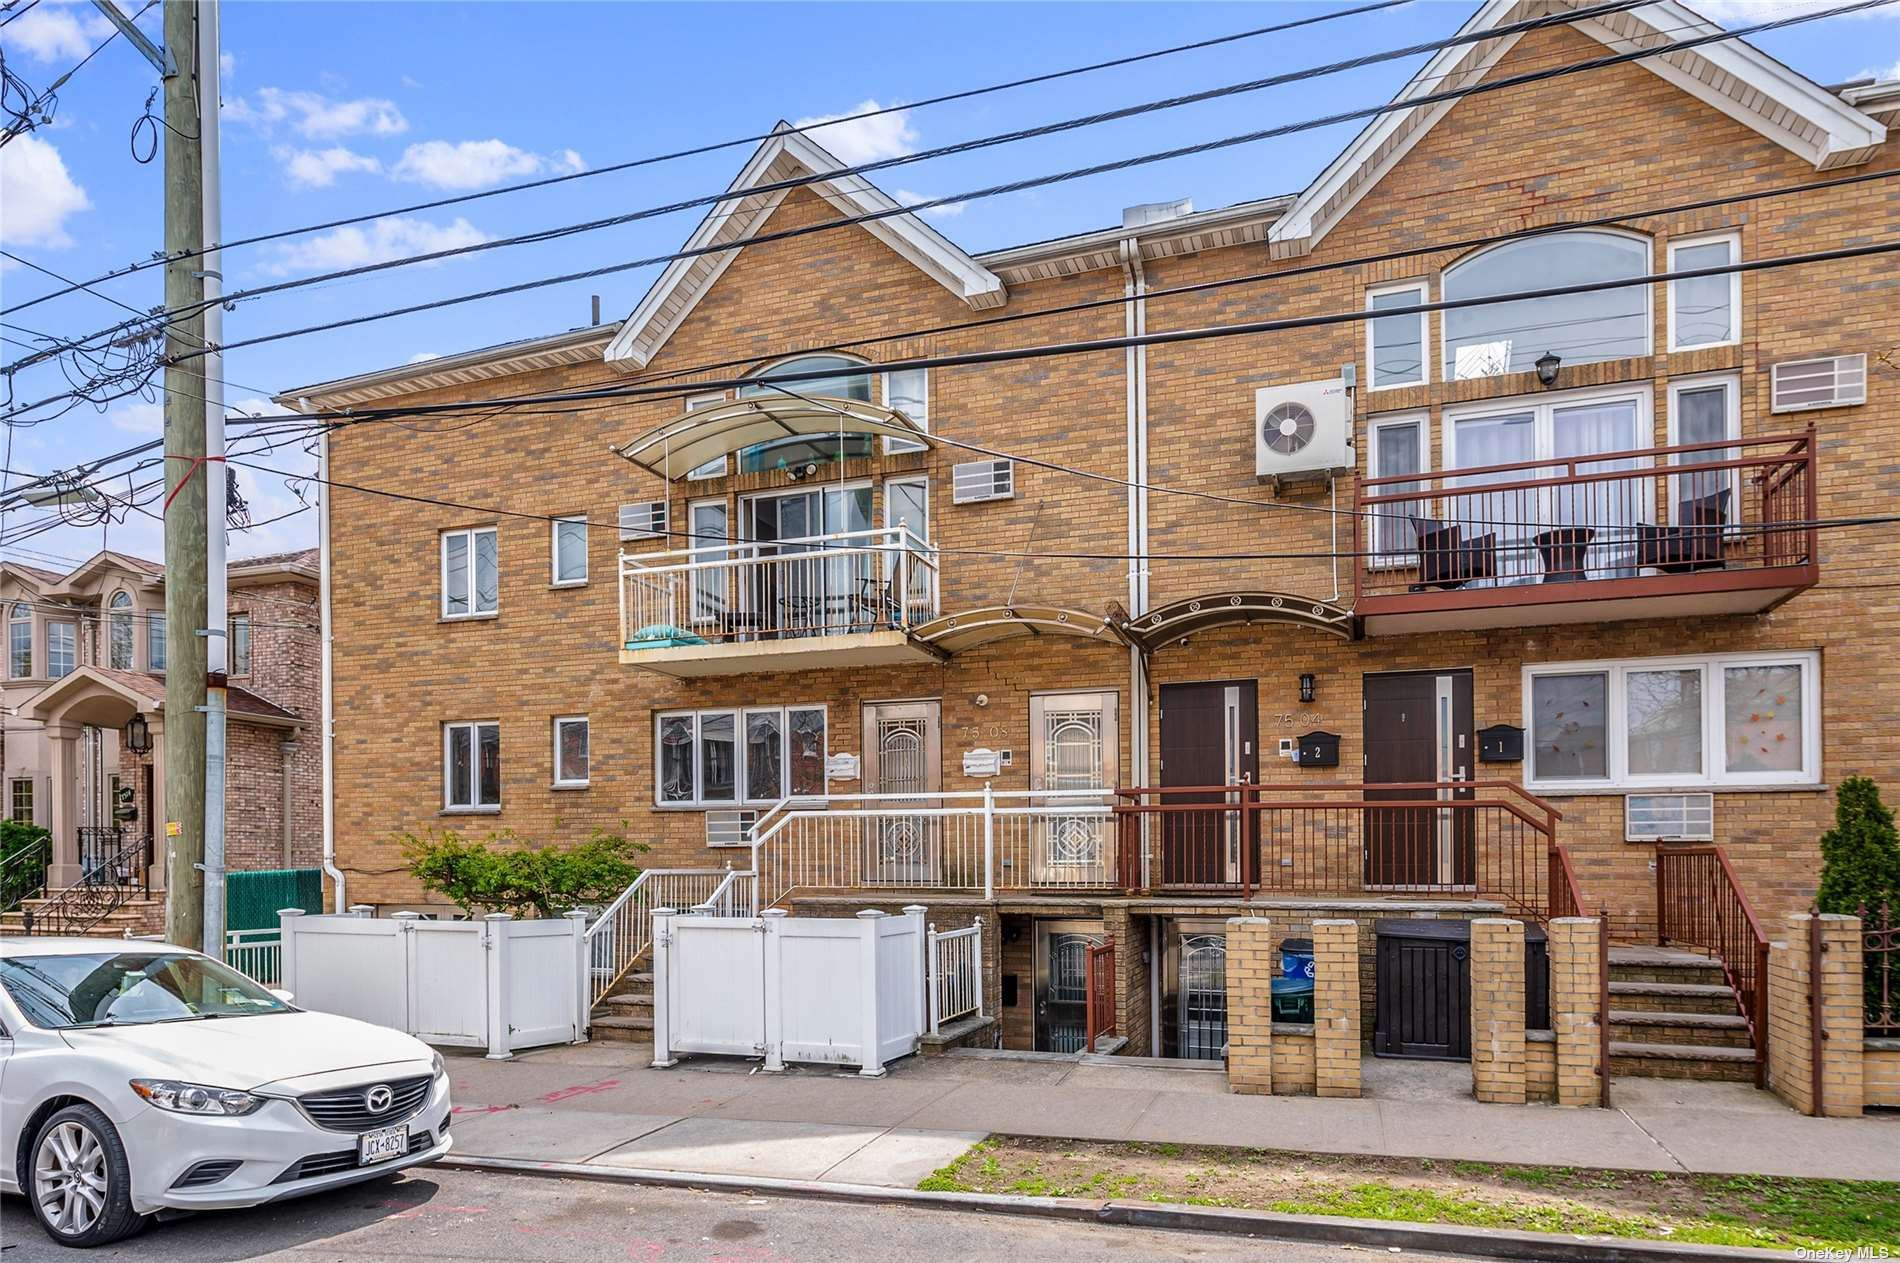 75-08 Caldwell Avenue, Middle Village, NY 11379 - MLS#: 3302067